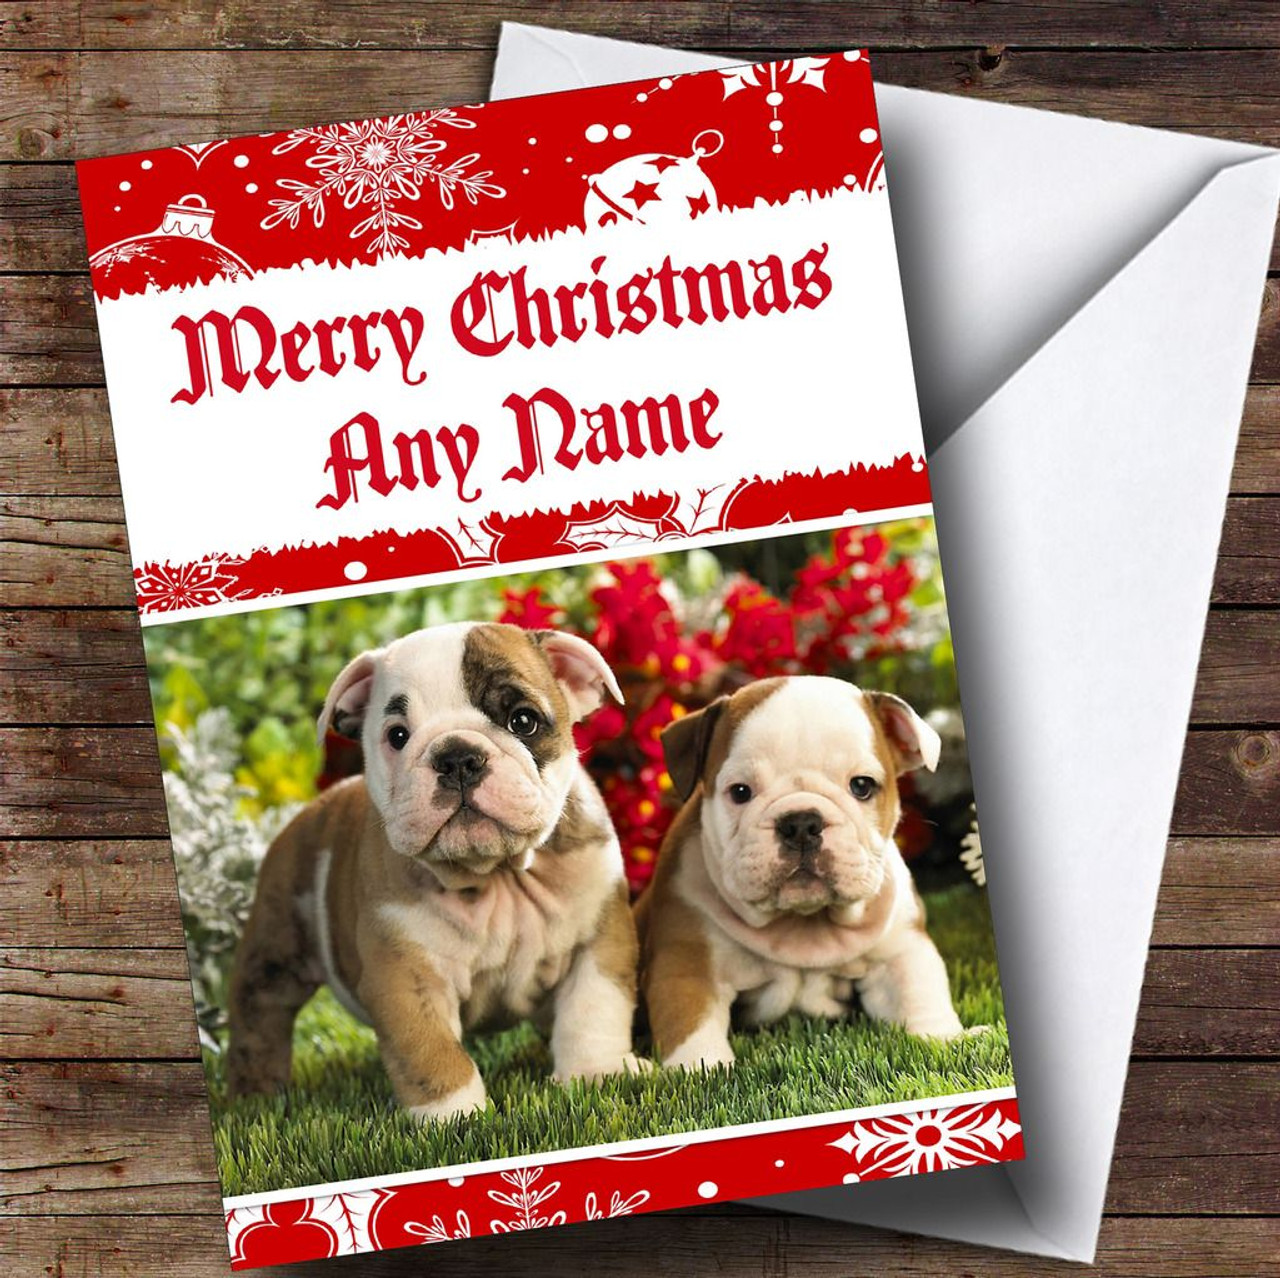 Bulldog Puppy Dogs Personalised Christmas Card - The Card Zoo